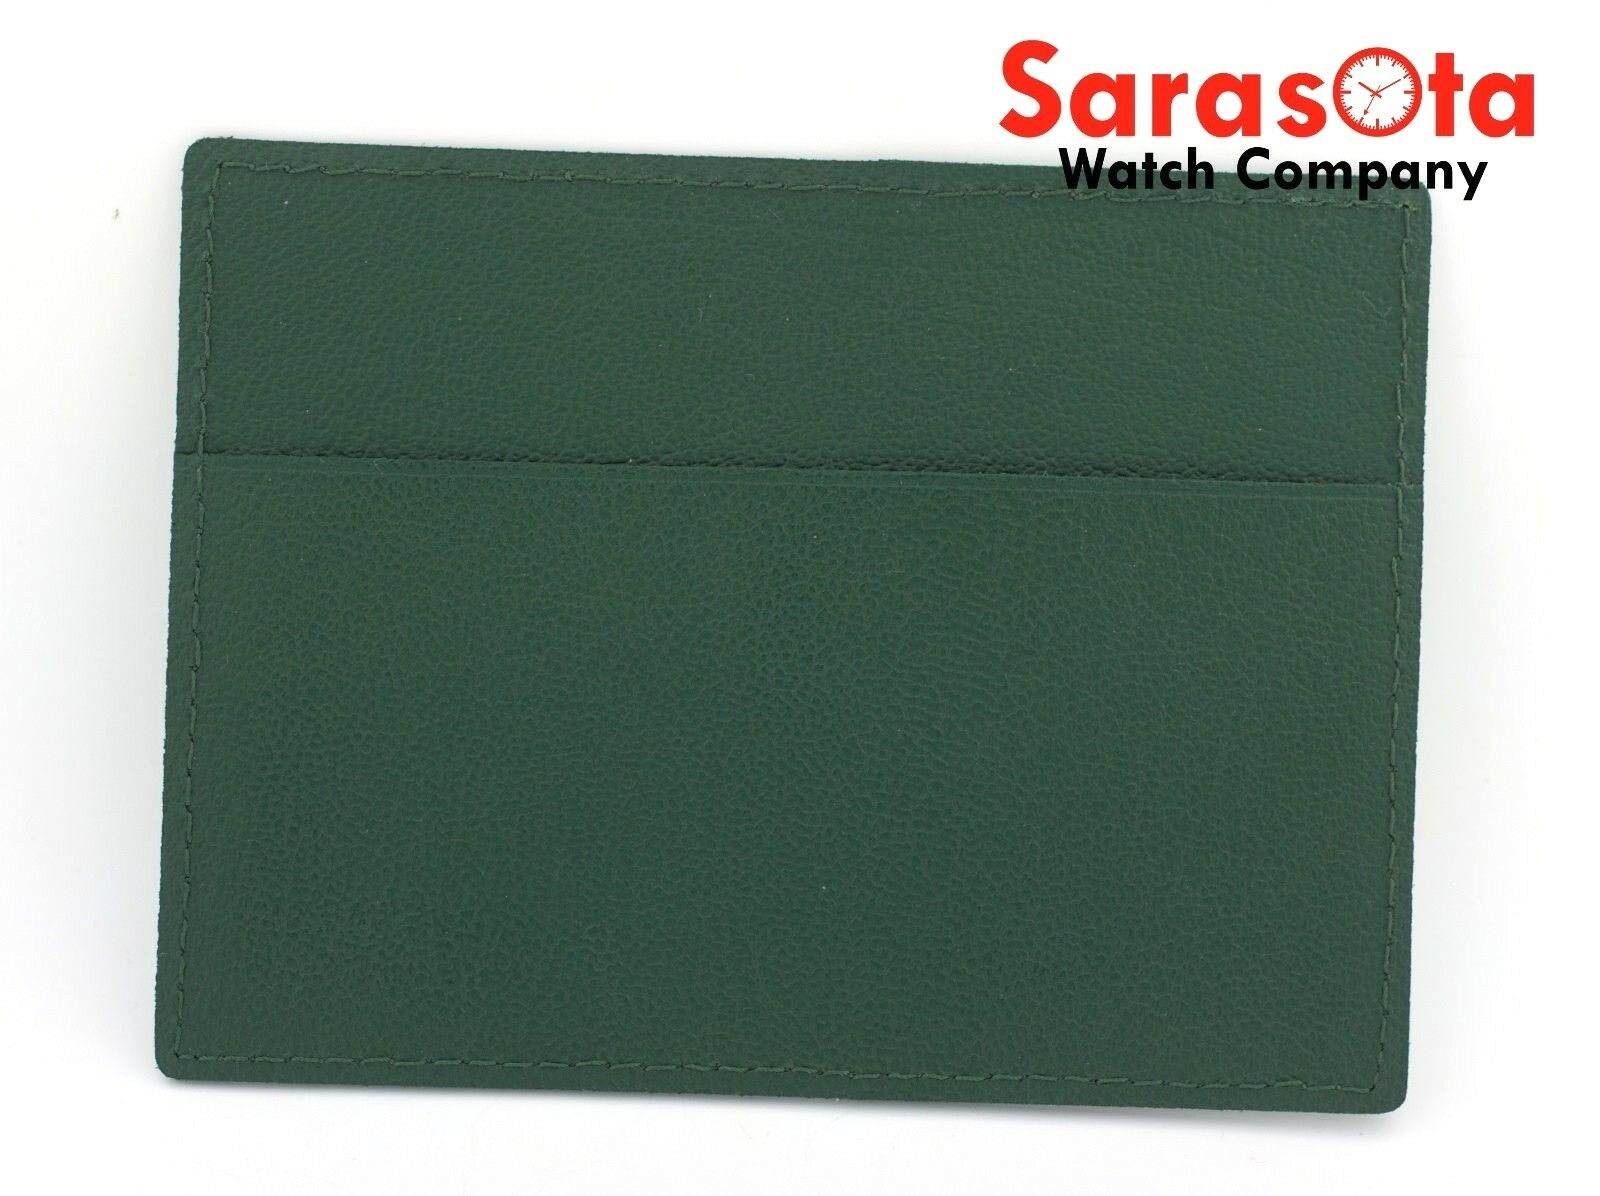 Genuine ROLEX 01014034 Green Leather Card Holder Calendar Instruction Booklet 113088716642 2